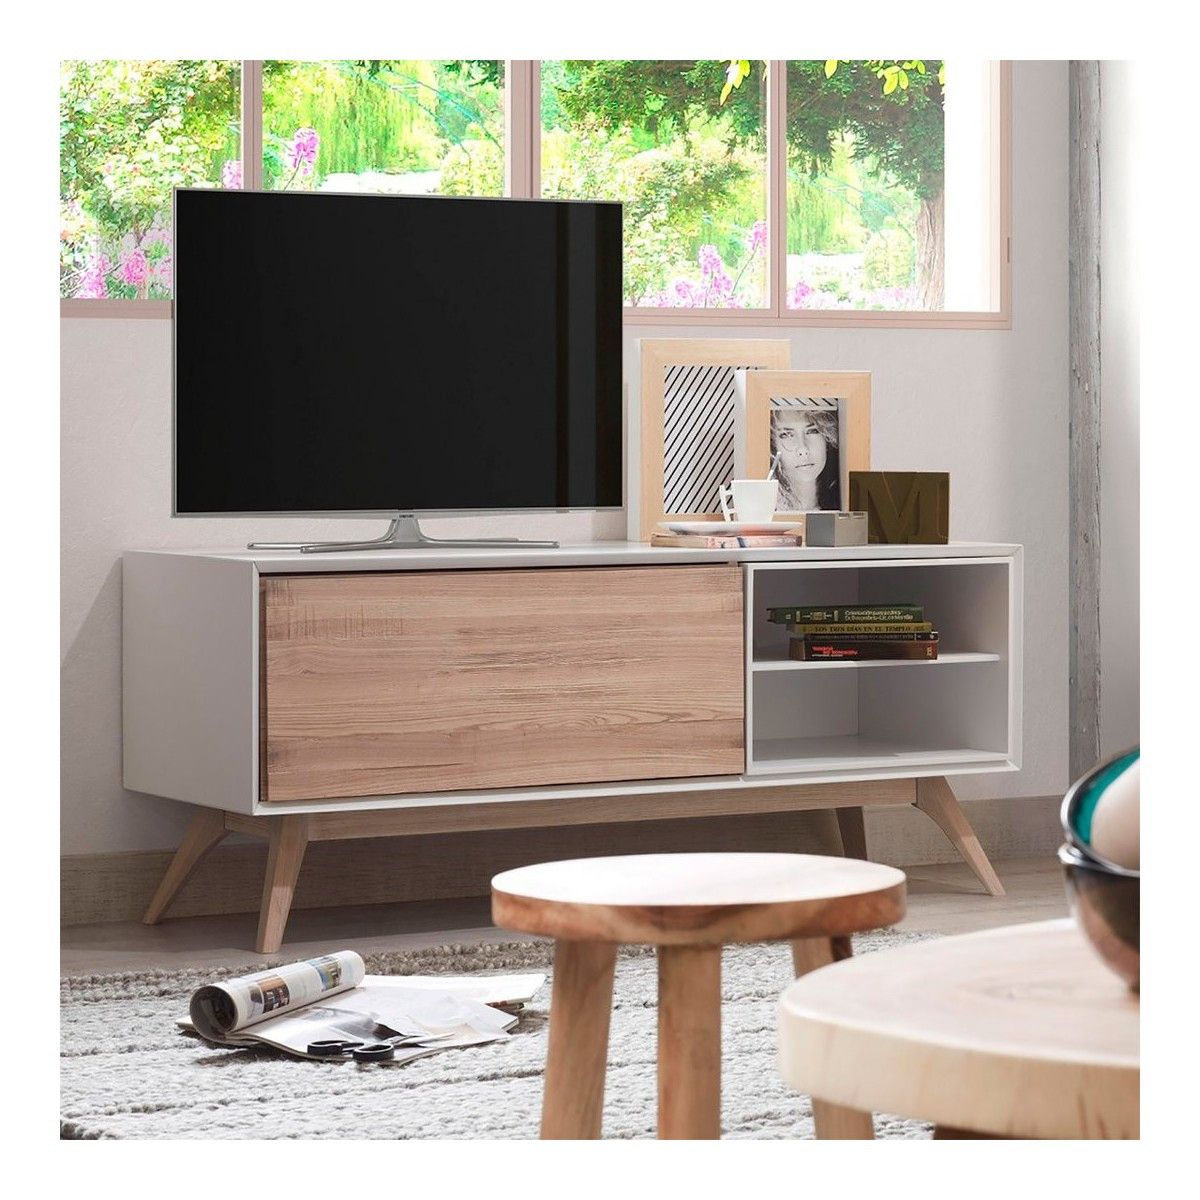 Mueble Tv Estilo nordico Arriba Mueble Tv nordico Quattro Con 1 Puerta Demarques Of Mueble Tv Estilo nordico Adorable Mueble Tv Estilo Nórdico En Nogal Americano